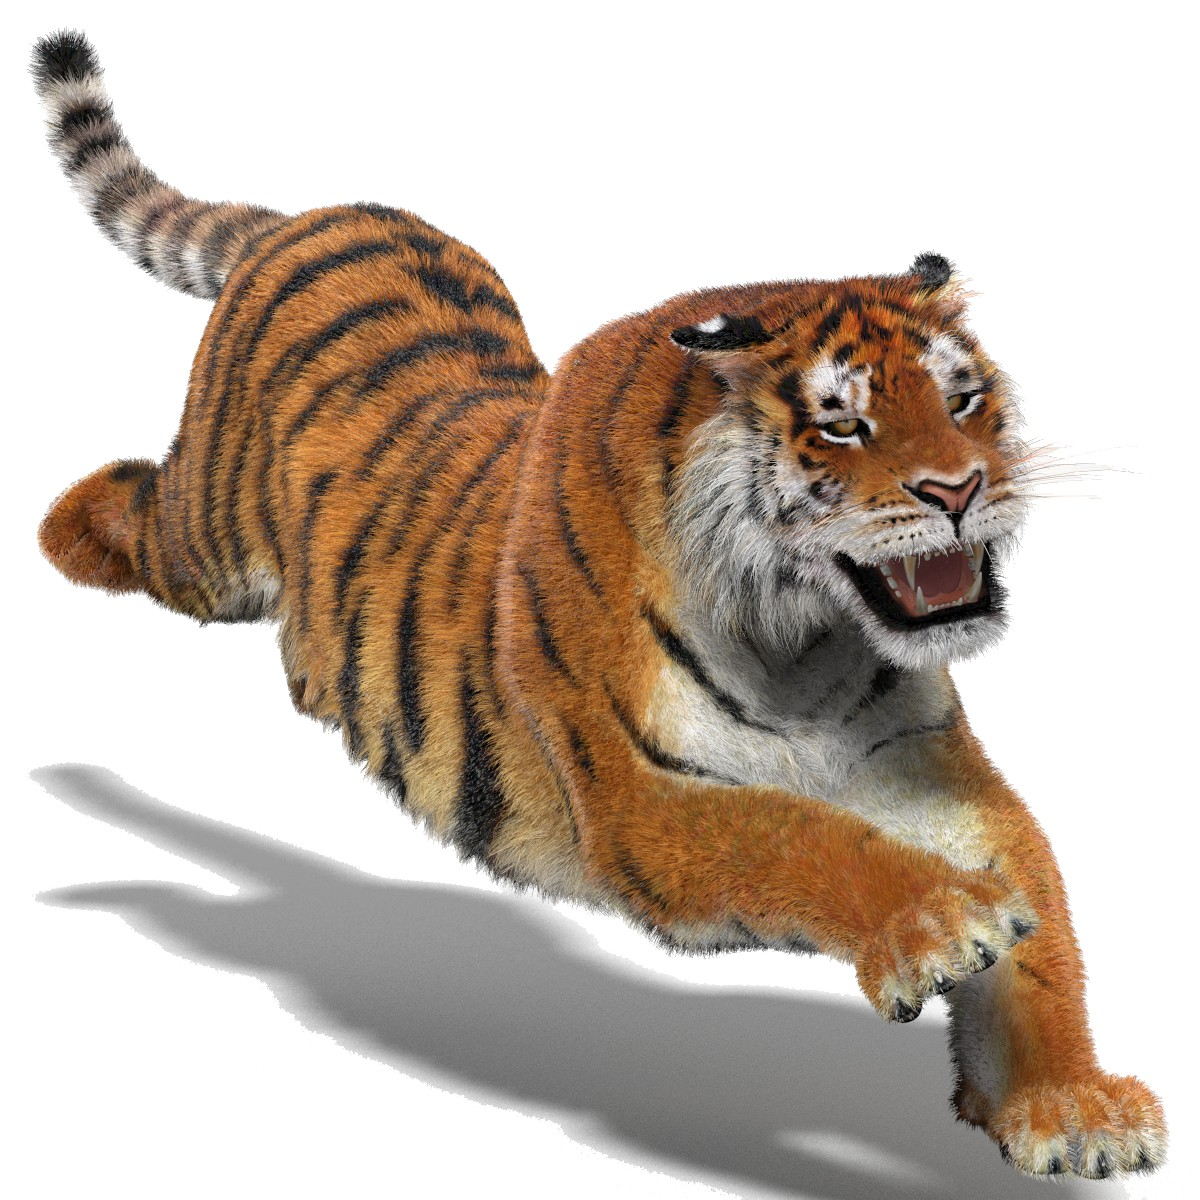 1200x1200 - Animated Tiger 17